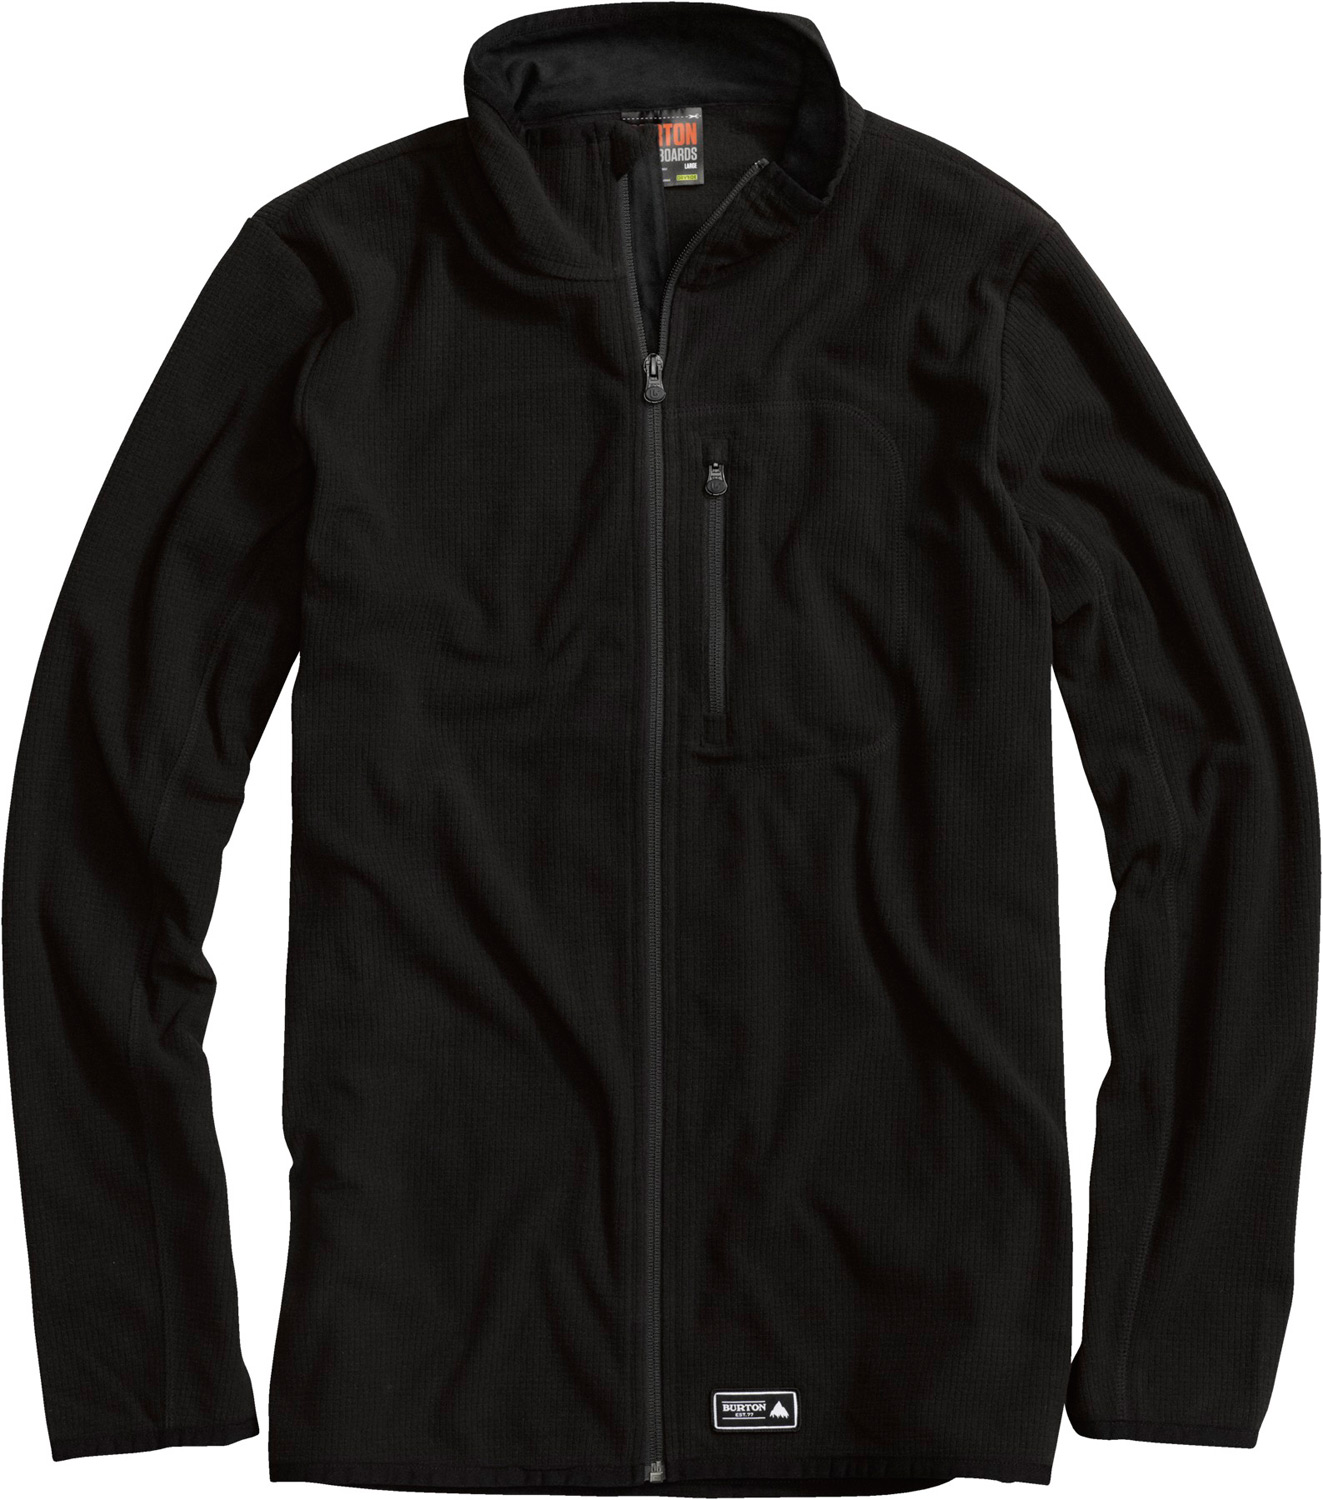 Snowboard Heat-seeking straight liner-clean and simple, no-nonsense warmth.Key Features of the Burton Groove Fleece: Lightweight DRYRIDE Thermex Grid Fleece [70% Recycled PET] Zippered Chest Pocket Binding at Cuffs and Hem Profile Fit for Street Style or Layering Ideal for Year-Round Outdoor Activity - $84.95